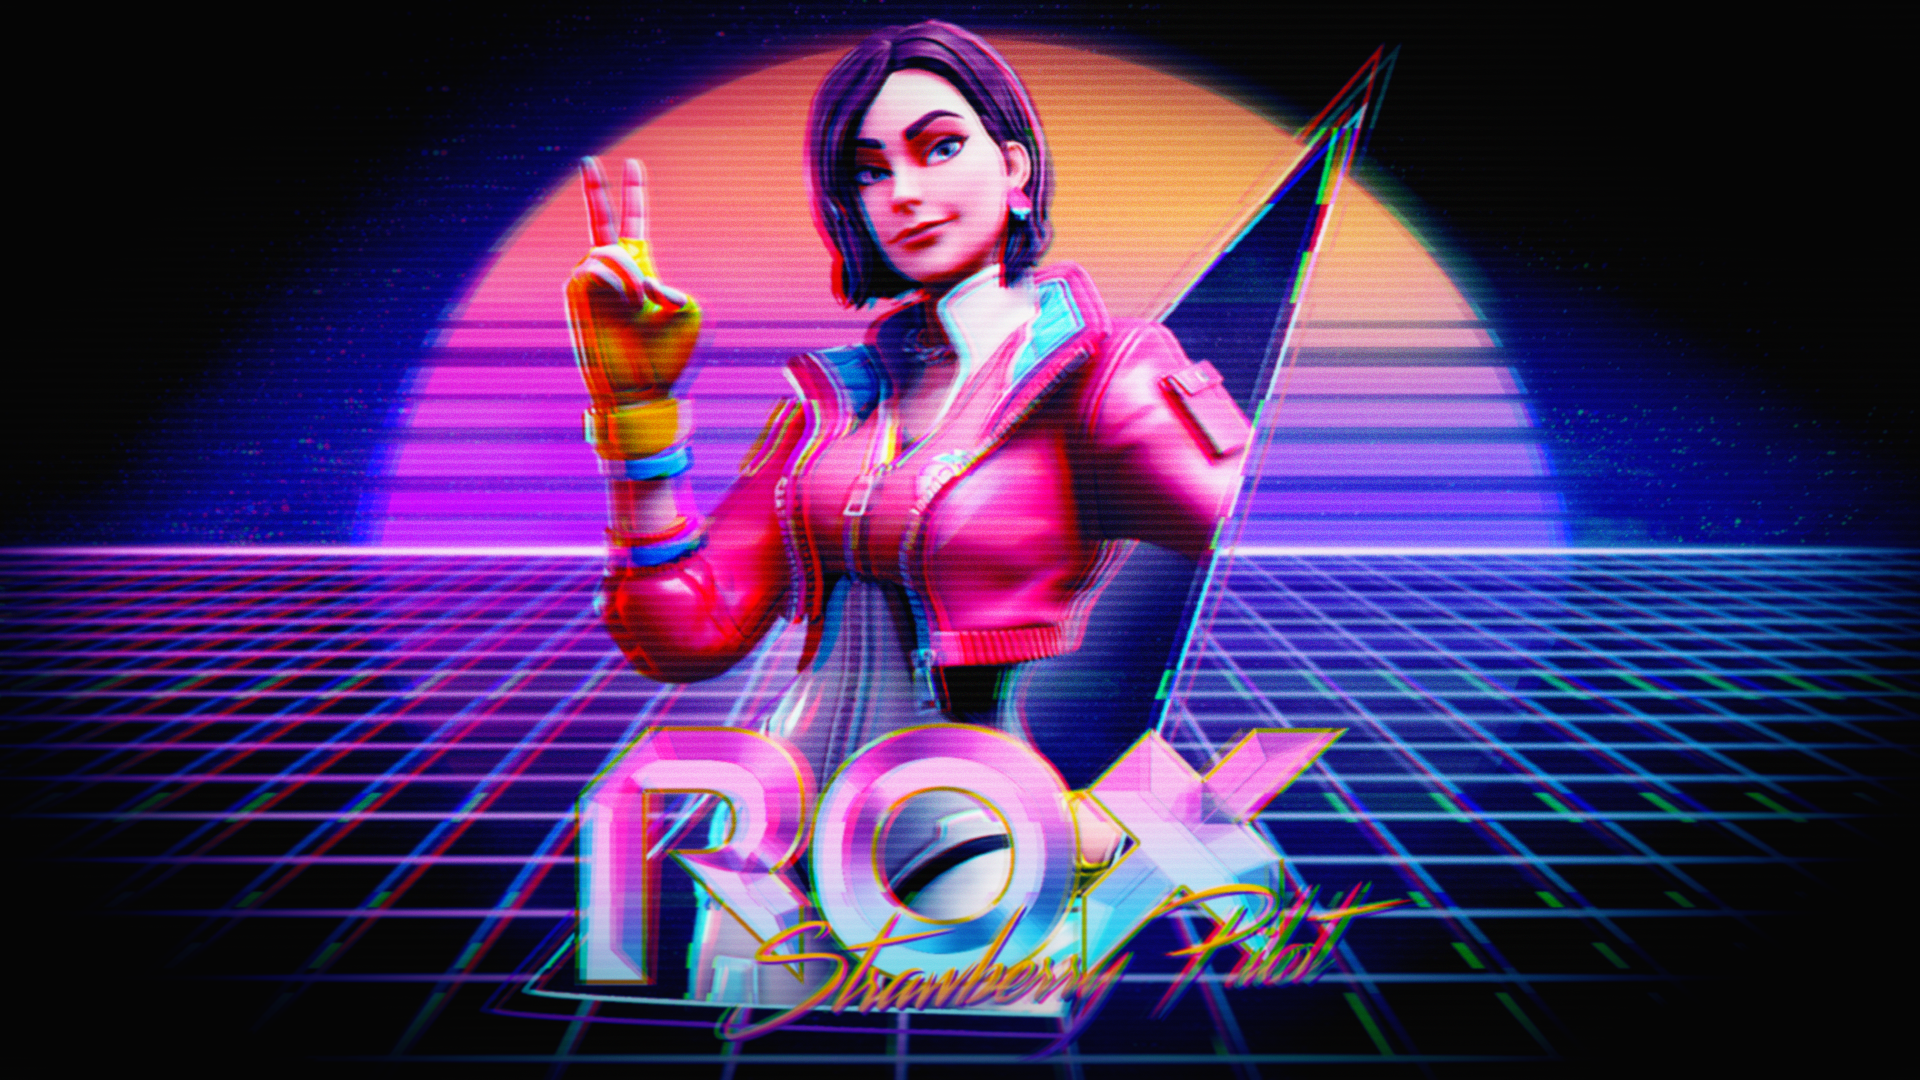 Inspired by the neon theme this season I made this quick wallpaper 1920x1080